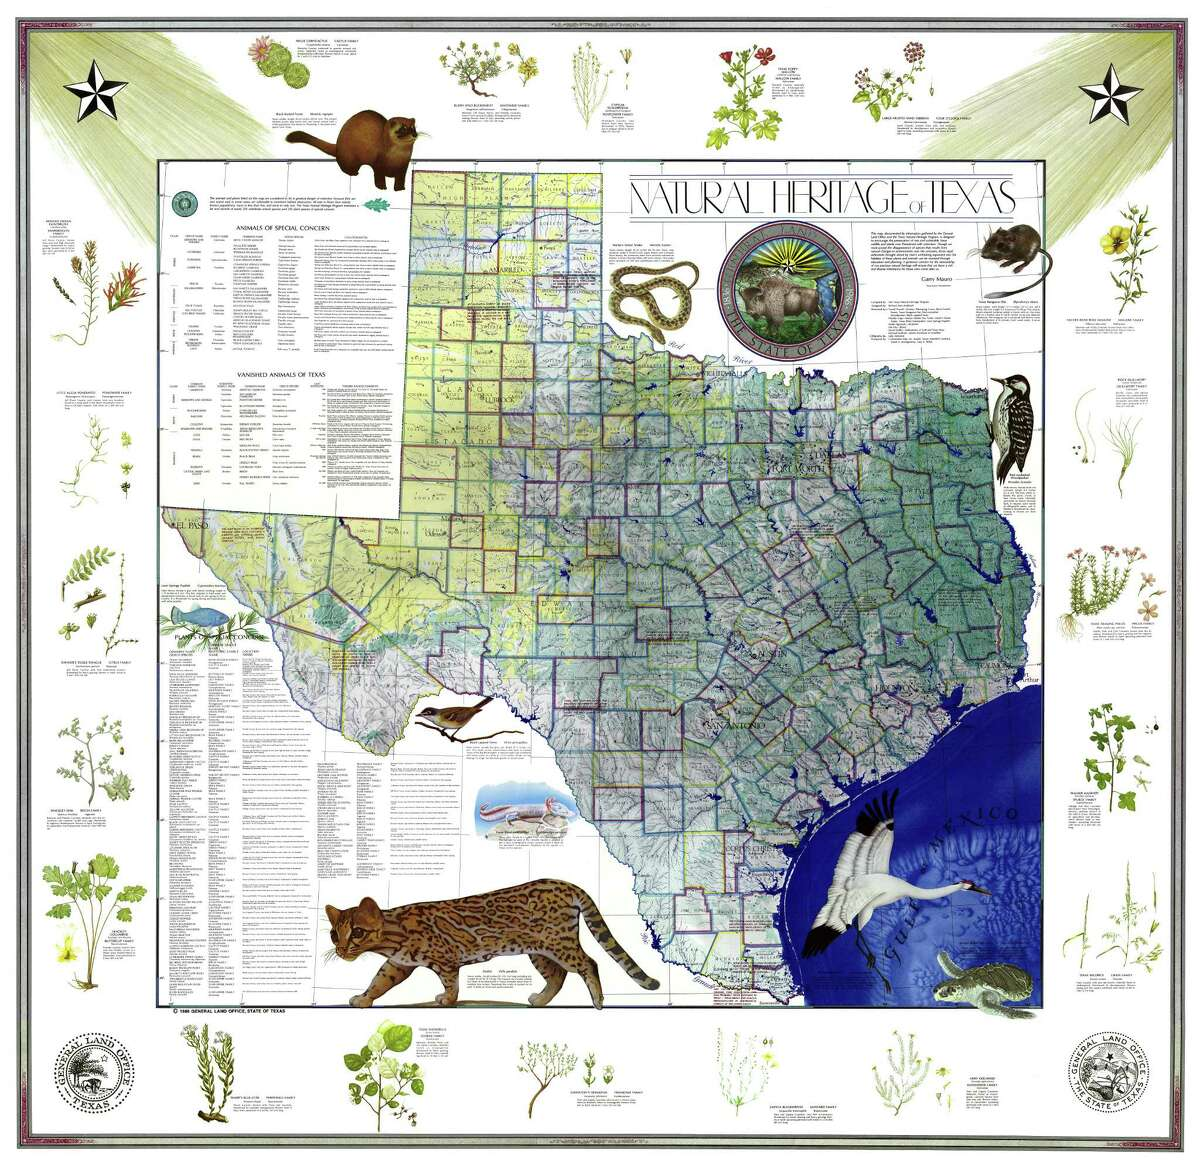 The Natural Heritage Map is among the most popular items sold by the Land Office.